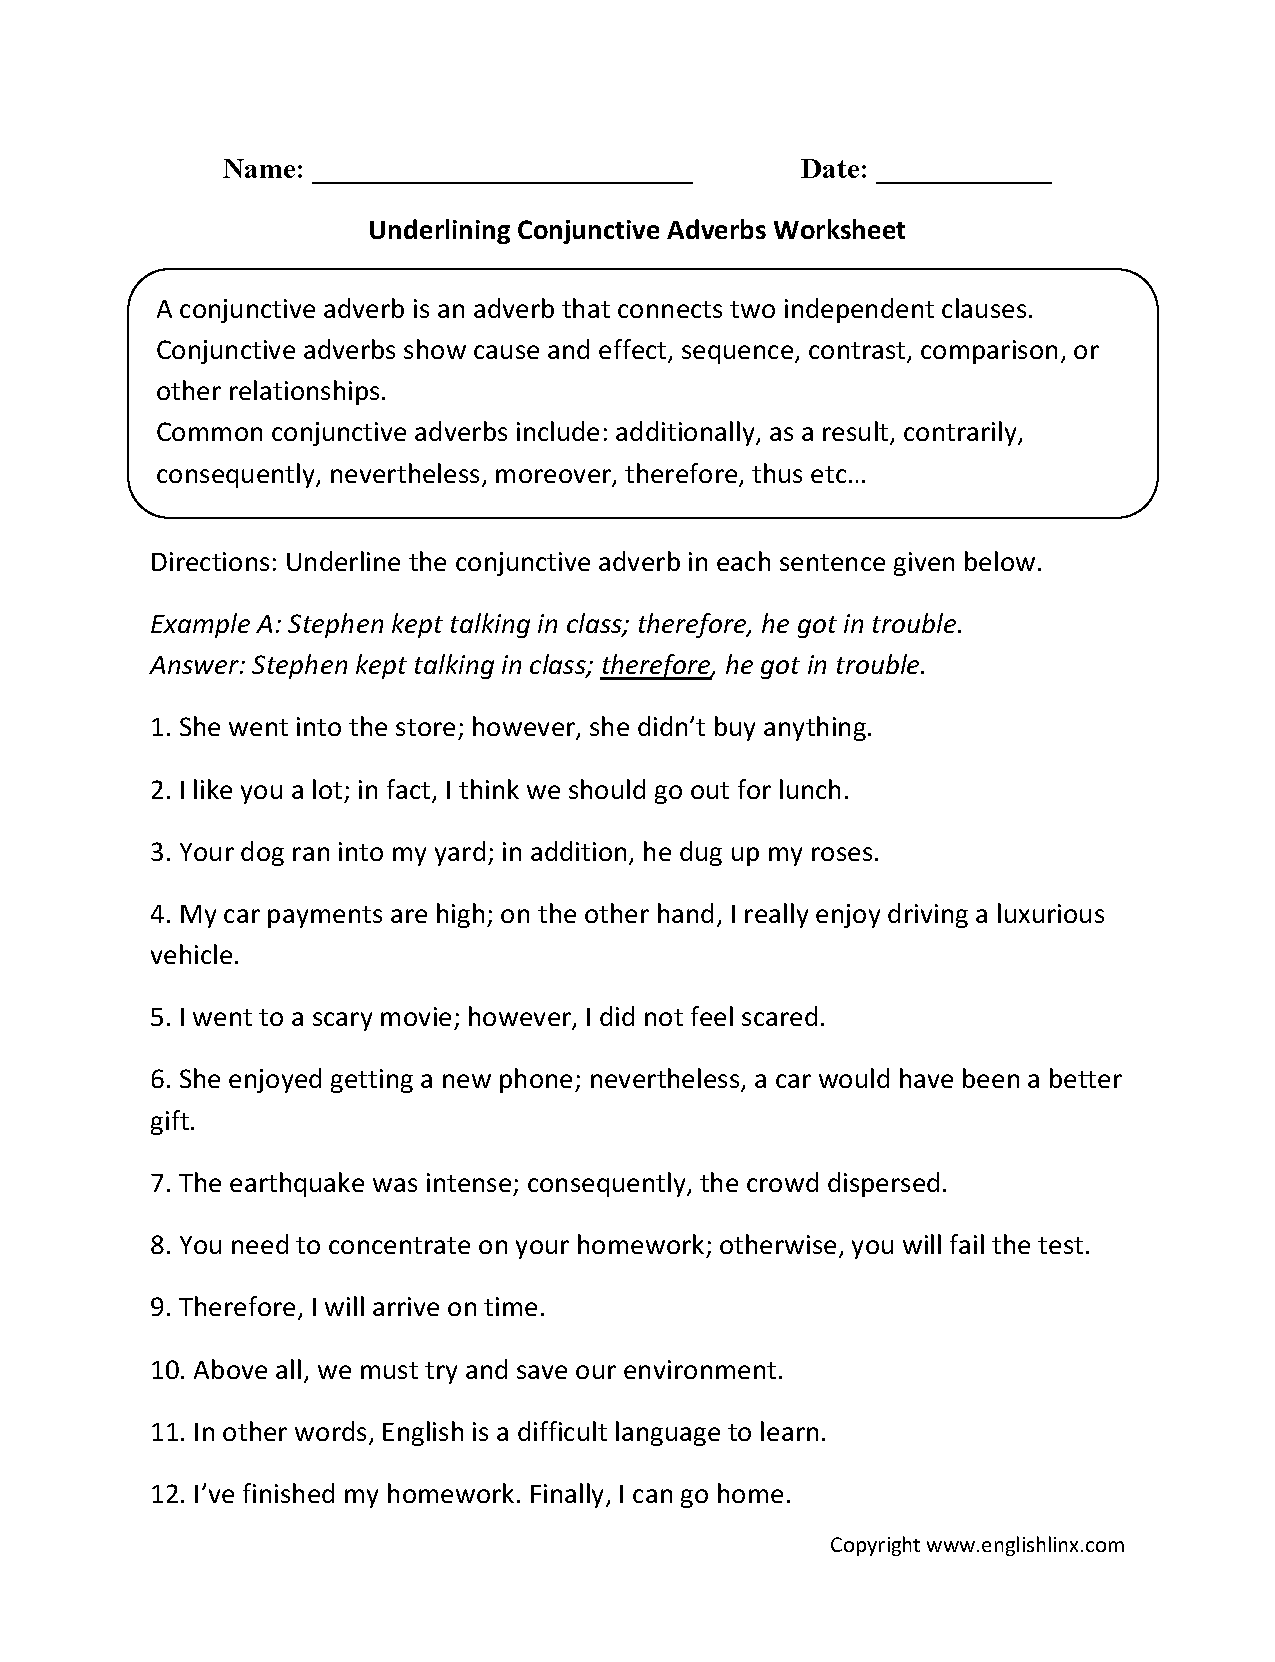 Weirdmailus  Nice Englishlinxcom  Conjunctions Worksheets With Marvelous Worksheet With Lovely Combining Integers Worksheet Also Multiplication Properties Worksheets In Addition Color By Number Subtraction Worksheets And College Algebra Worksheet As Well As Math Mates Worksheets Additionally Number Families Worksheets From Englishlinxcom With Weirdmailus  Marvelous Englishlinxcom  Conjunctions Worksheets With Lovely Worksheet And Nice Combining Integers Worksheet Also Multiplication Properties Worksheets In Addition Color By Number Subtraction Worksheets From Englishlinxcom